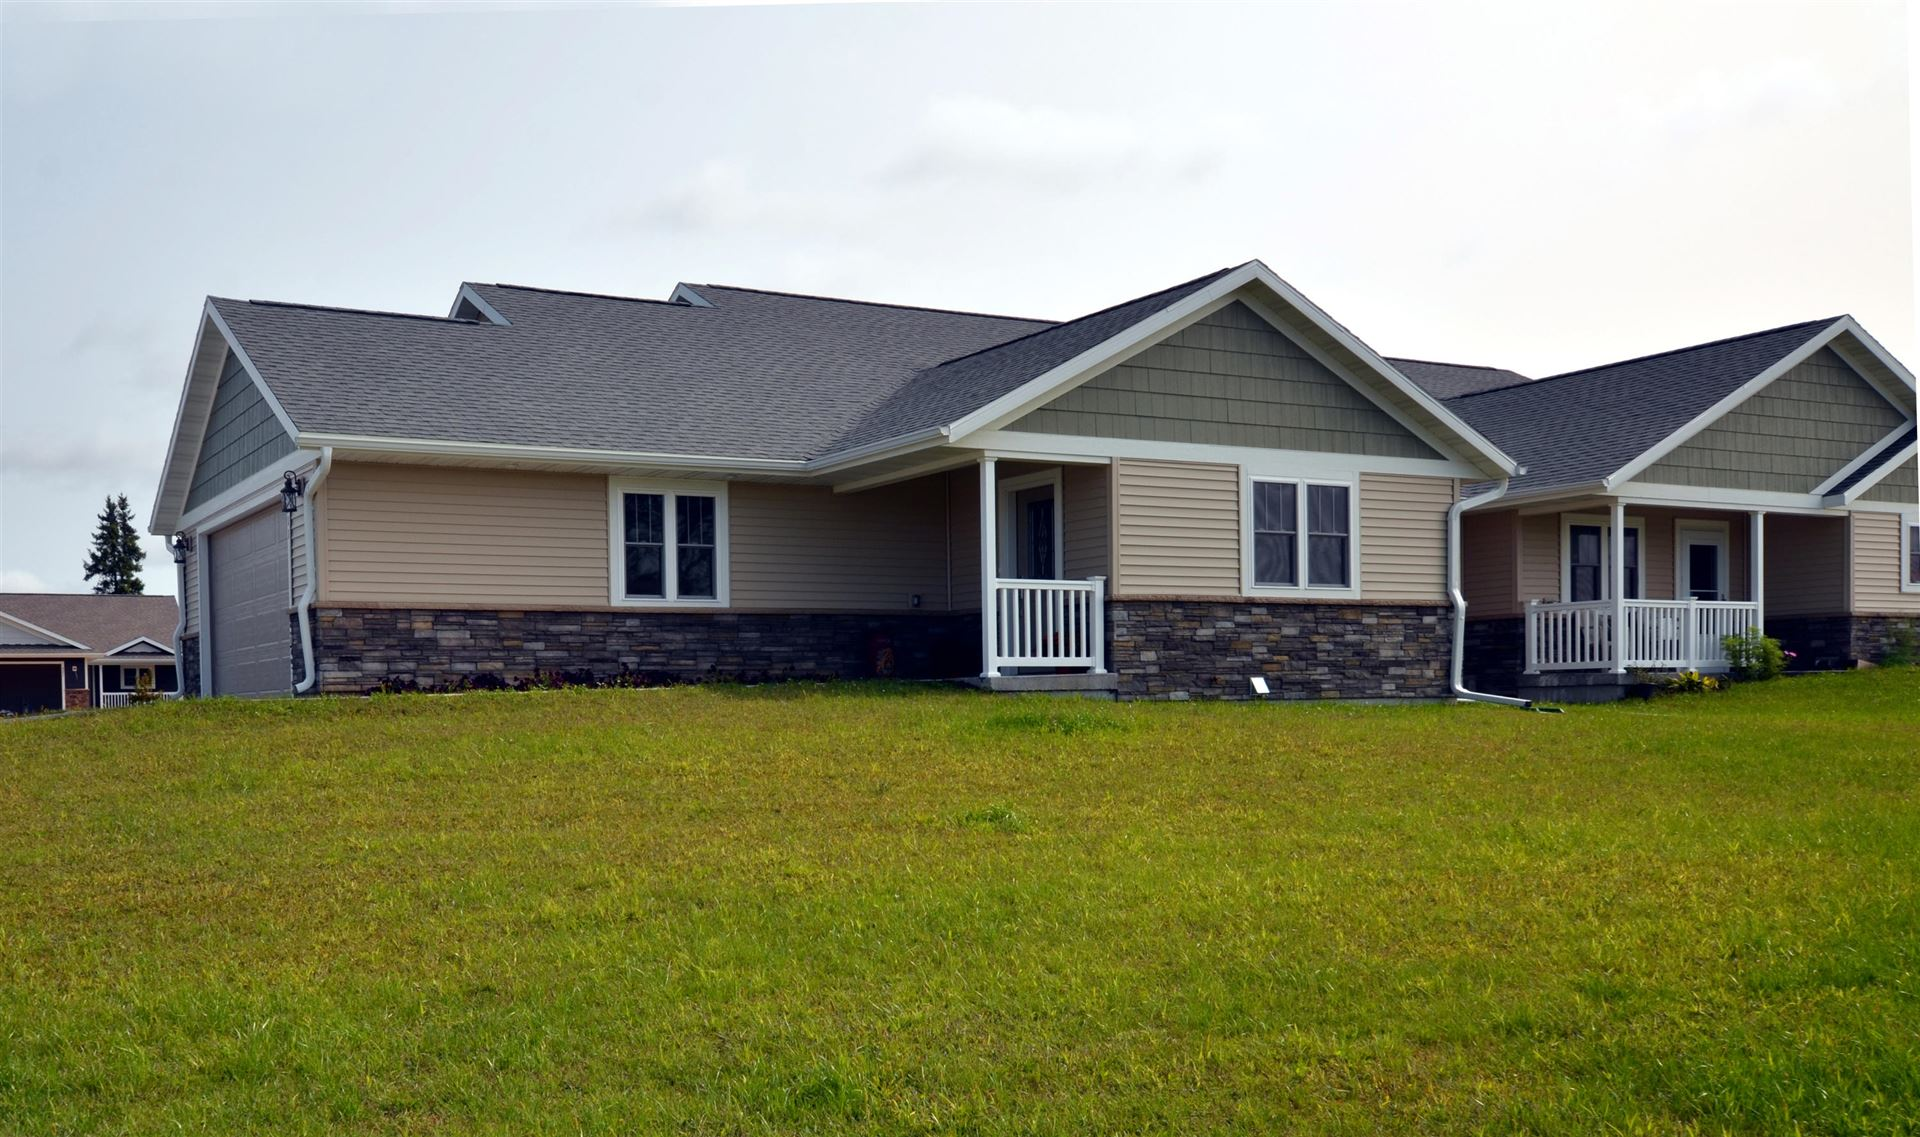 311 16th Fairway Cir, Viroqua, WI 54665 - MLS#: 1681559